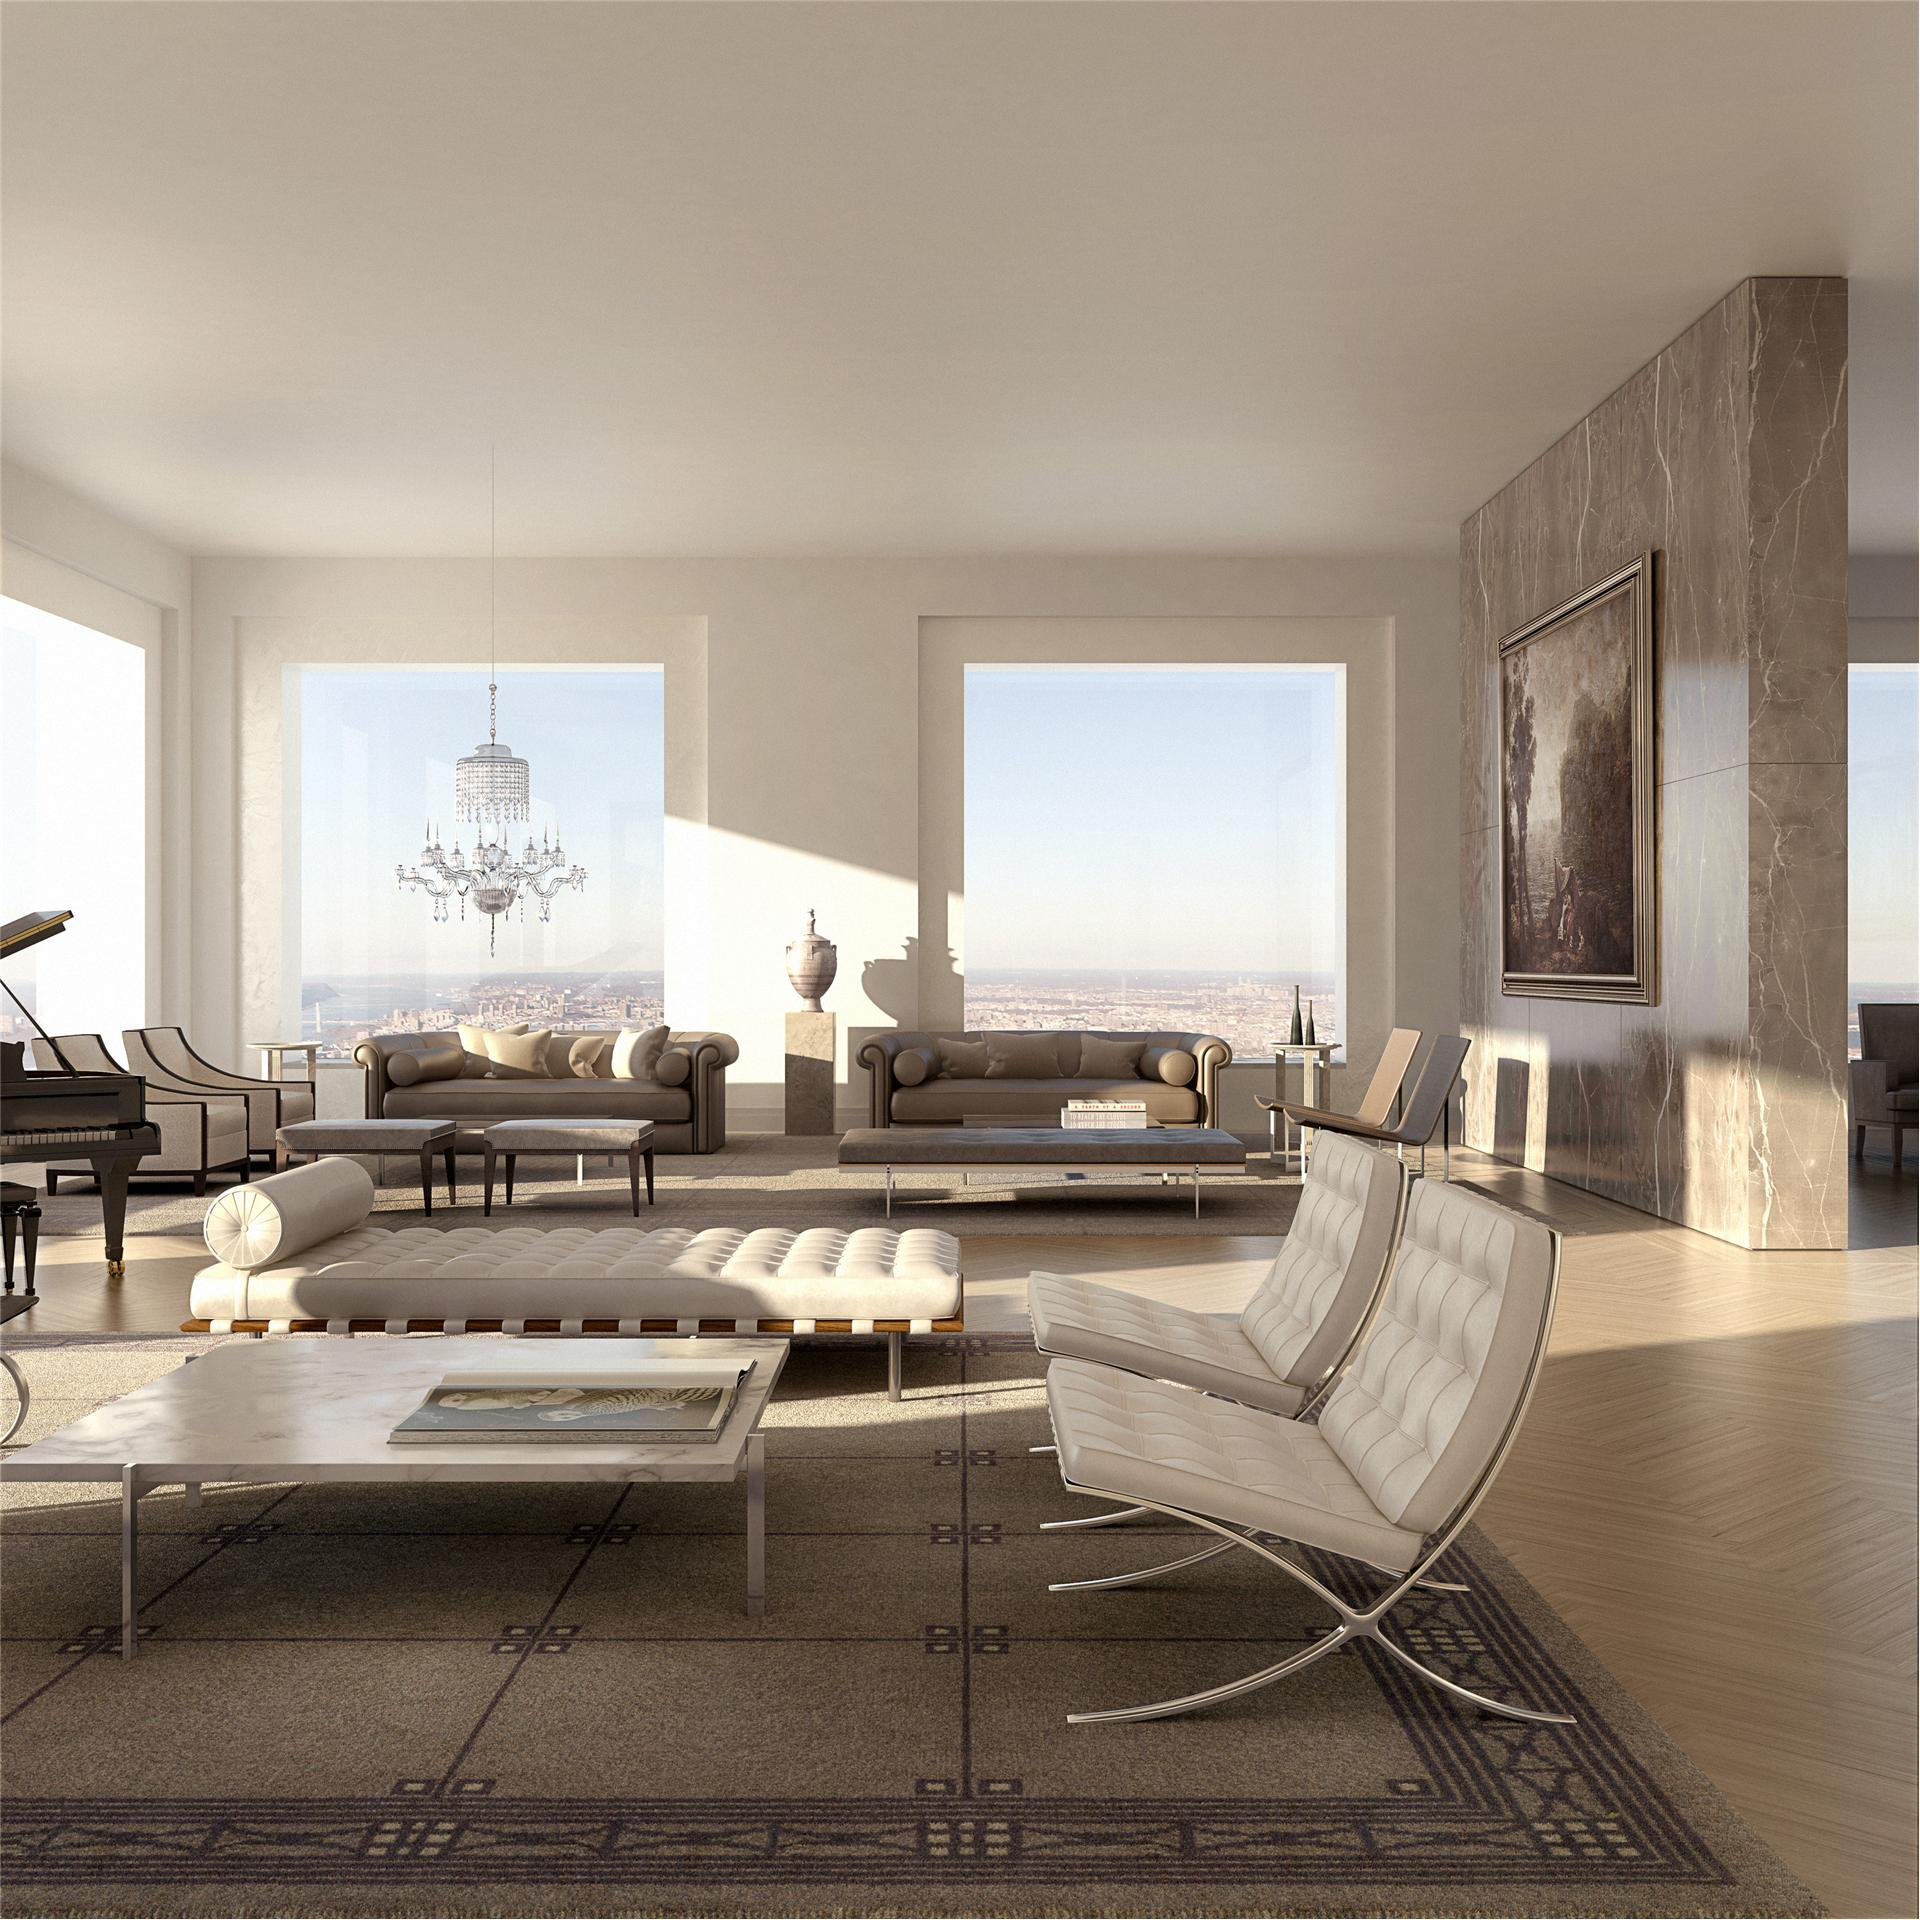 $95 Million Dollar Luxury Penthouse in New York-02